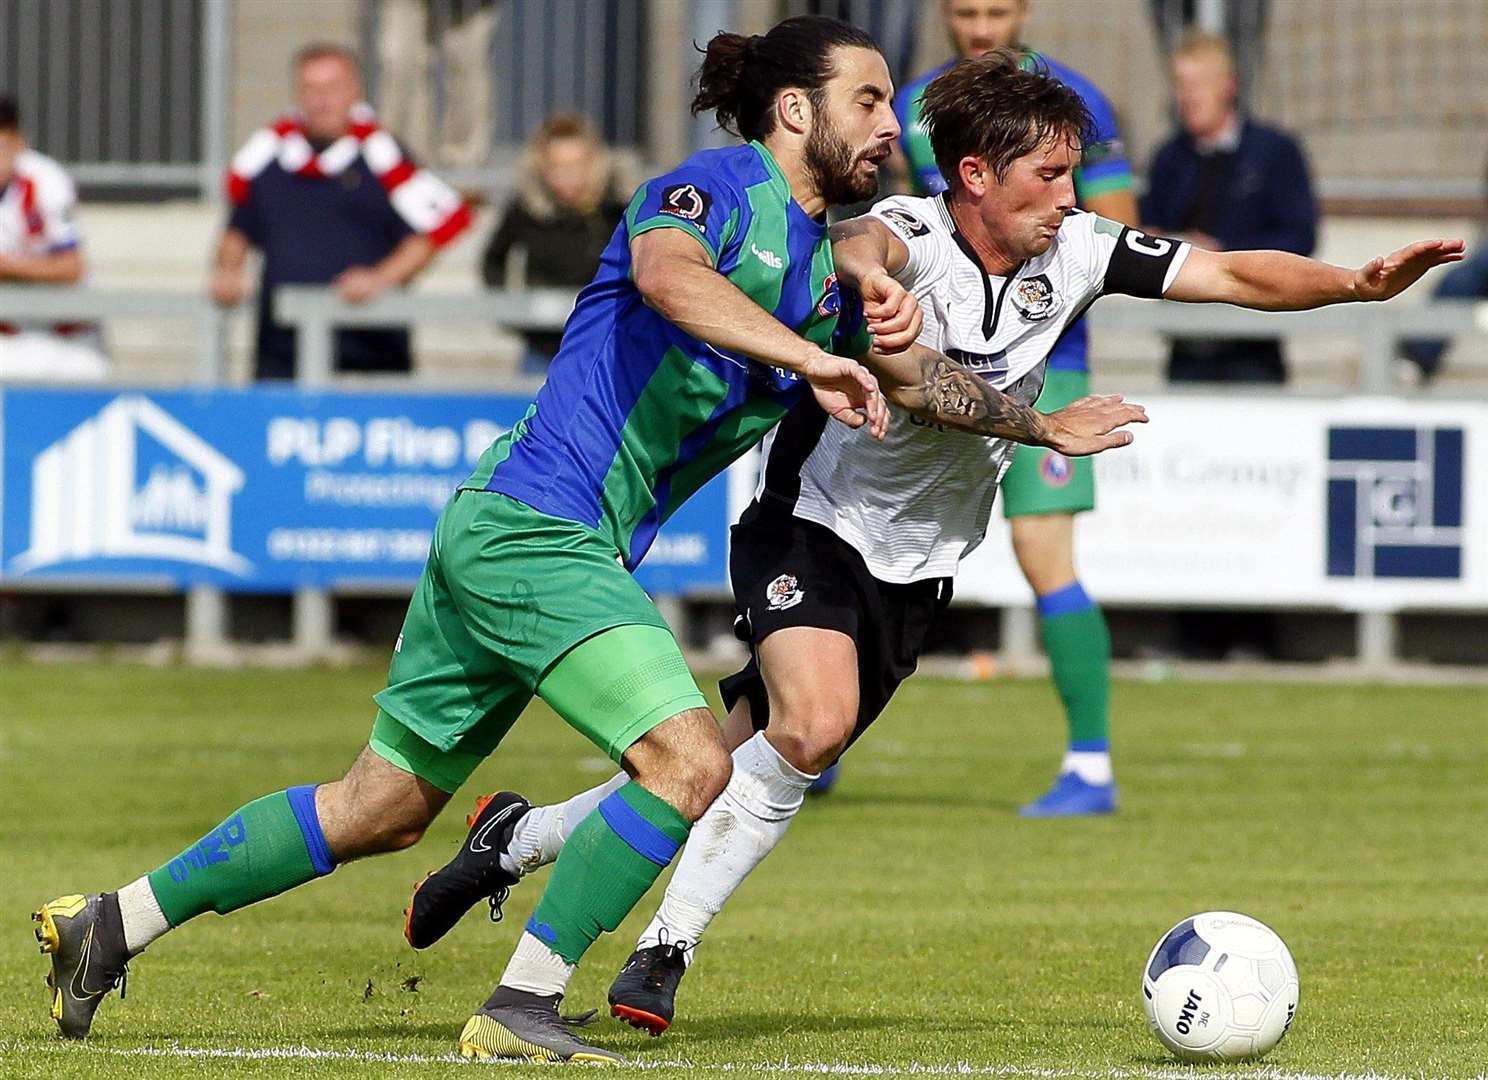 Dartford's Lee Noble holds off Dorking Wanderers' Daniel Gallagher. Picture: Sean Aidan